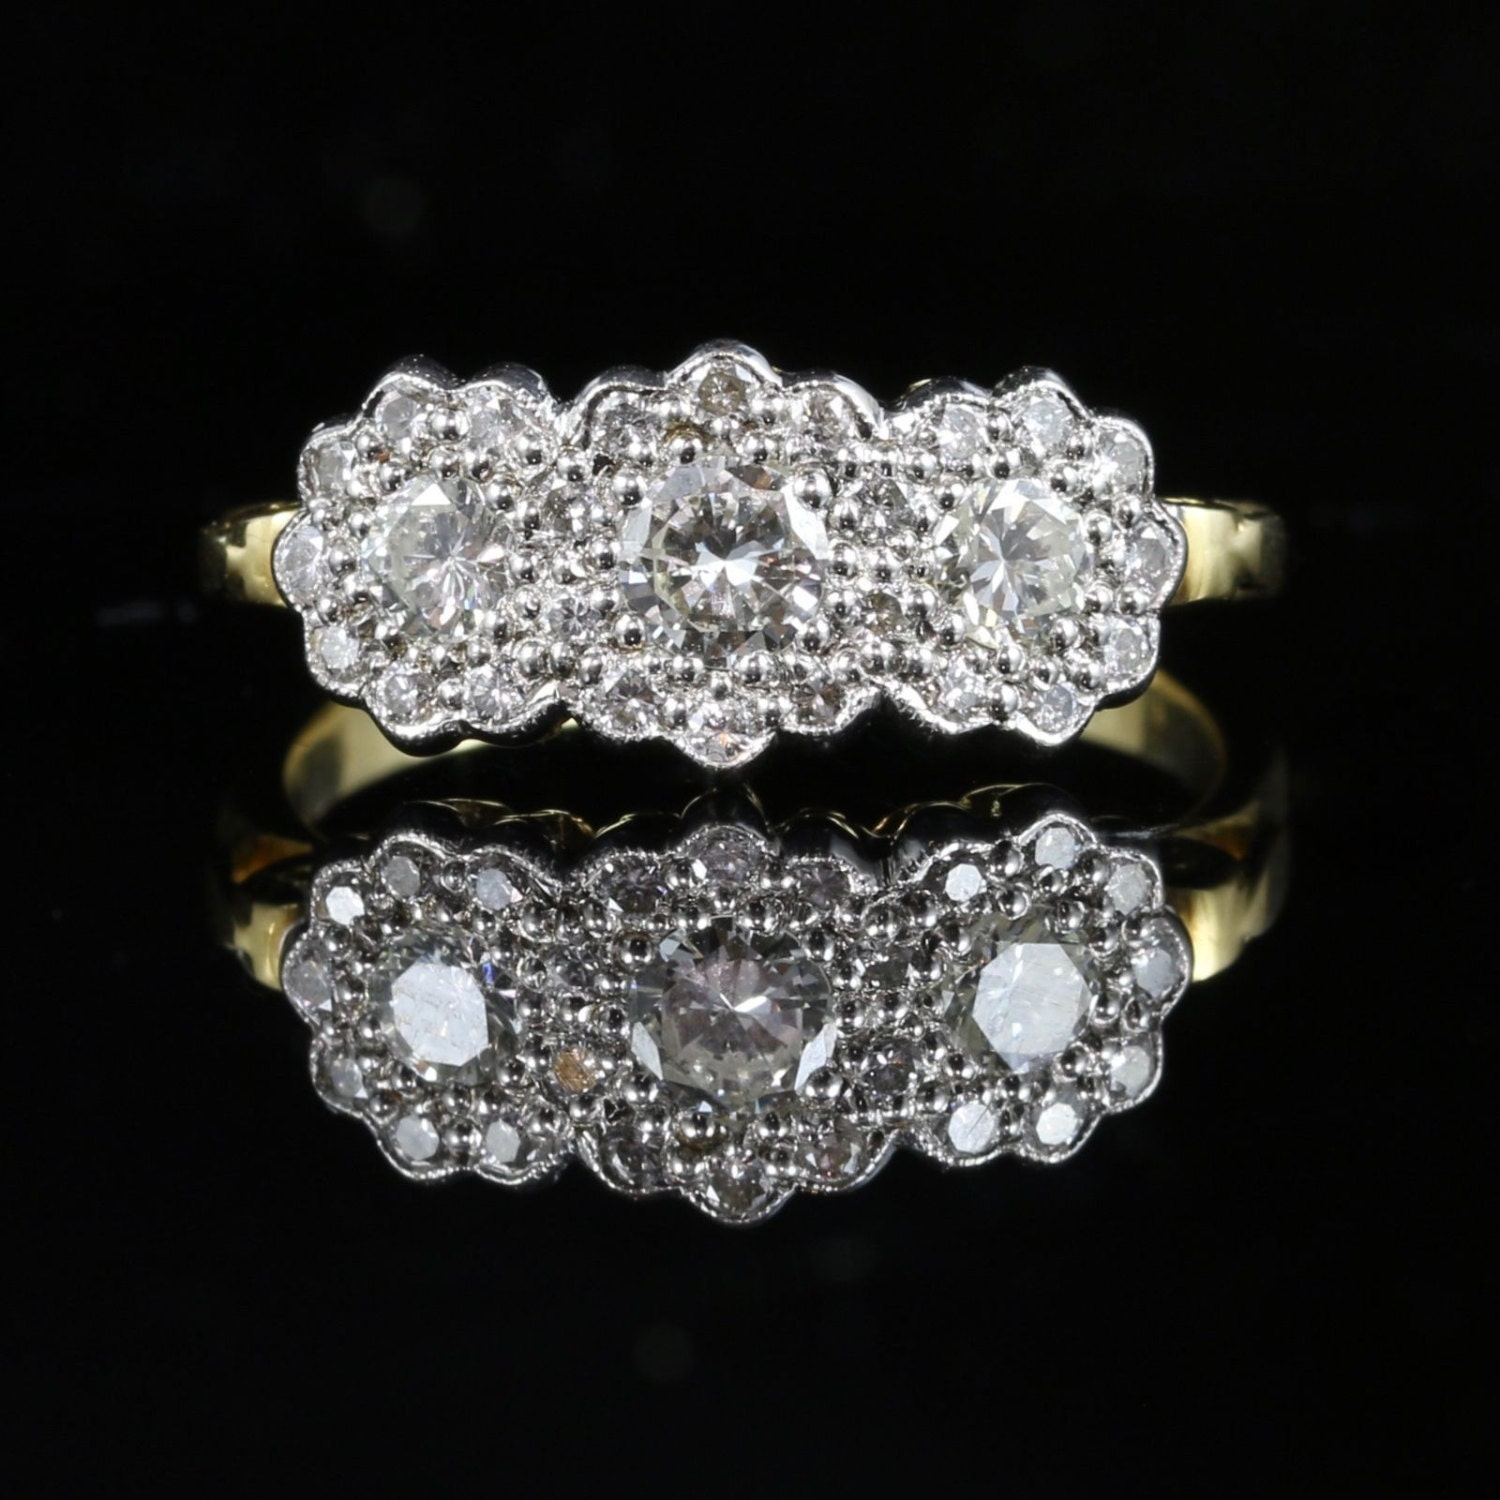 Antique Edwardian Diamond Trilogy Cluster Ring 0.80ct